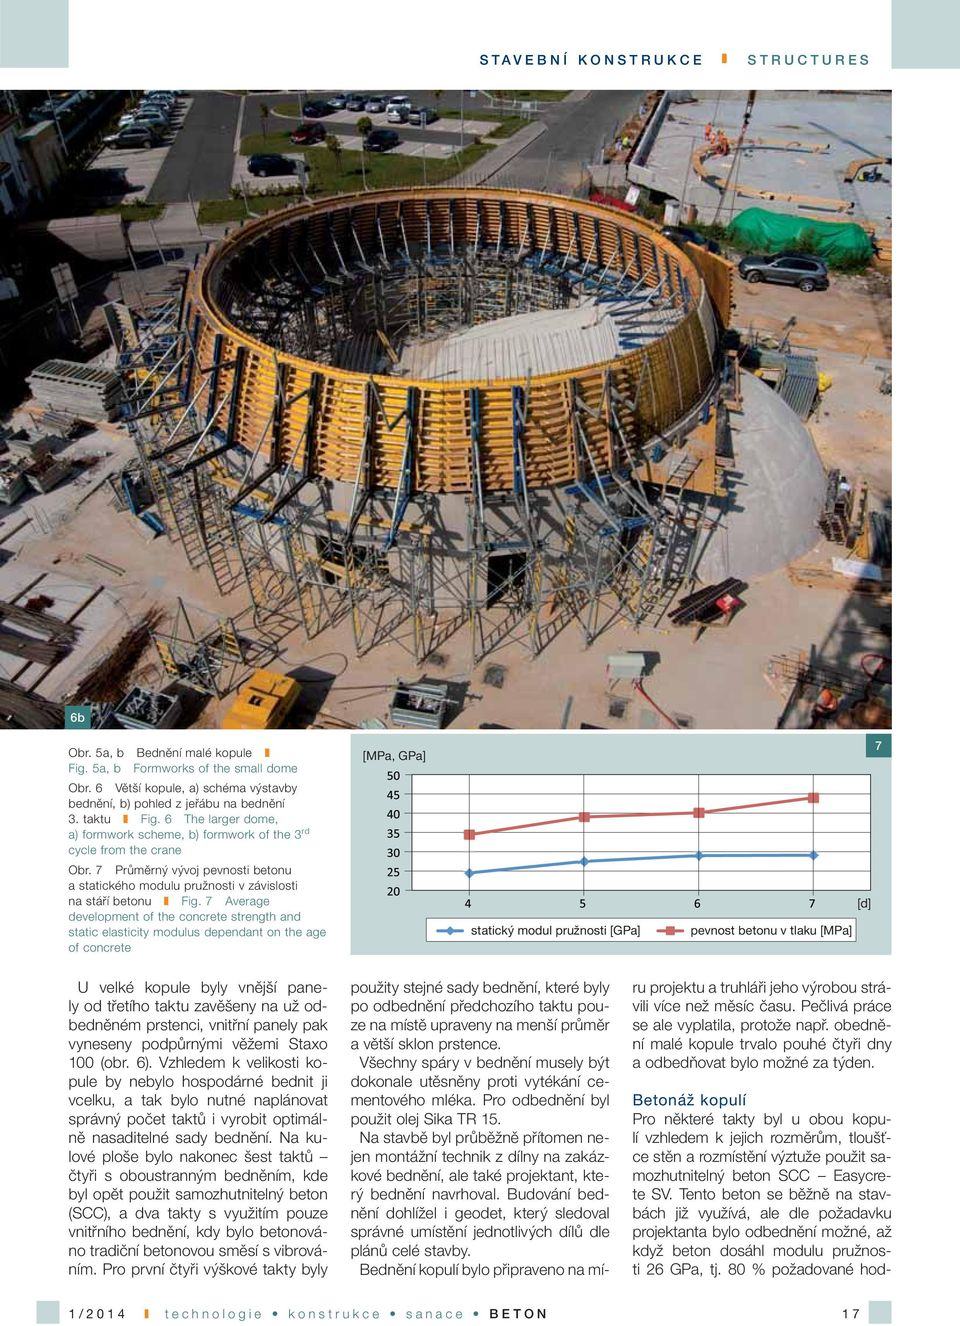 7 Average development of the concrete strength and static elasticity modulus dependant on the age of concrete [MPa, GPa] Betonáž kopulí Pro některé takty byl u obou kopulí vzhledem k jejich rozměrům,